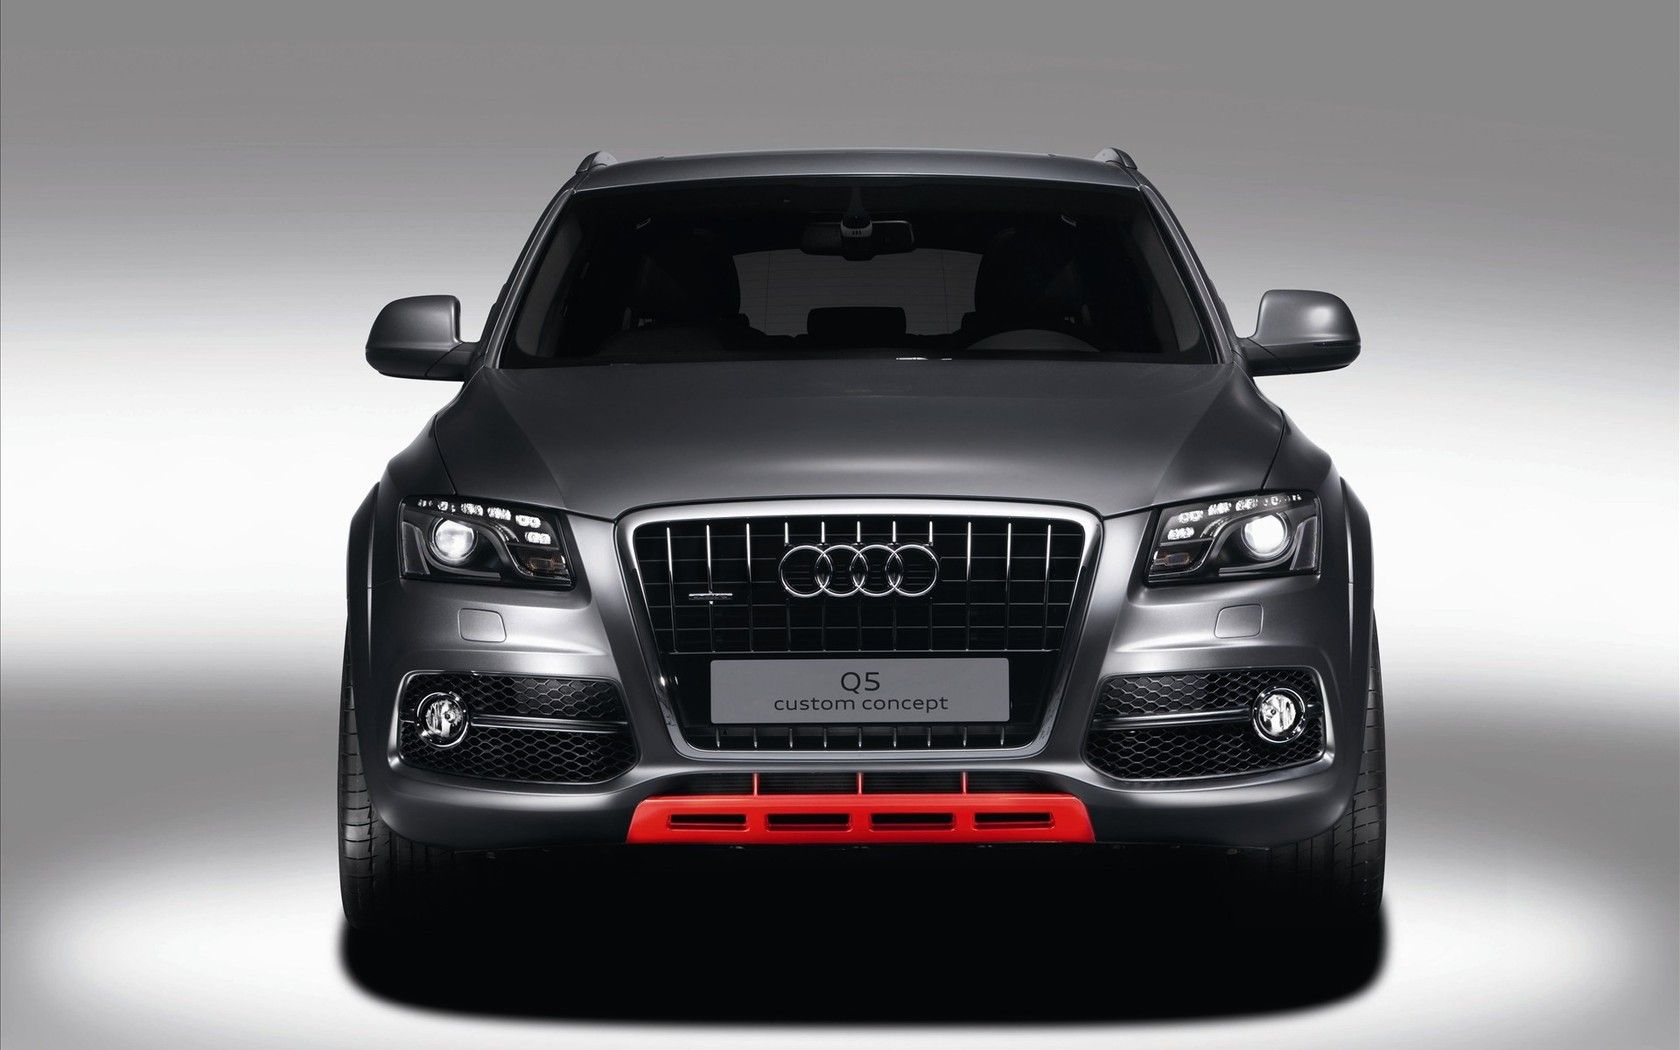 Audi Q5 Custom Concept Gray WallPaper HD